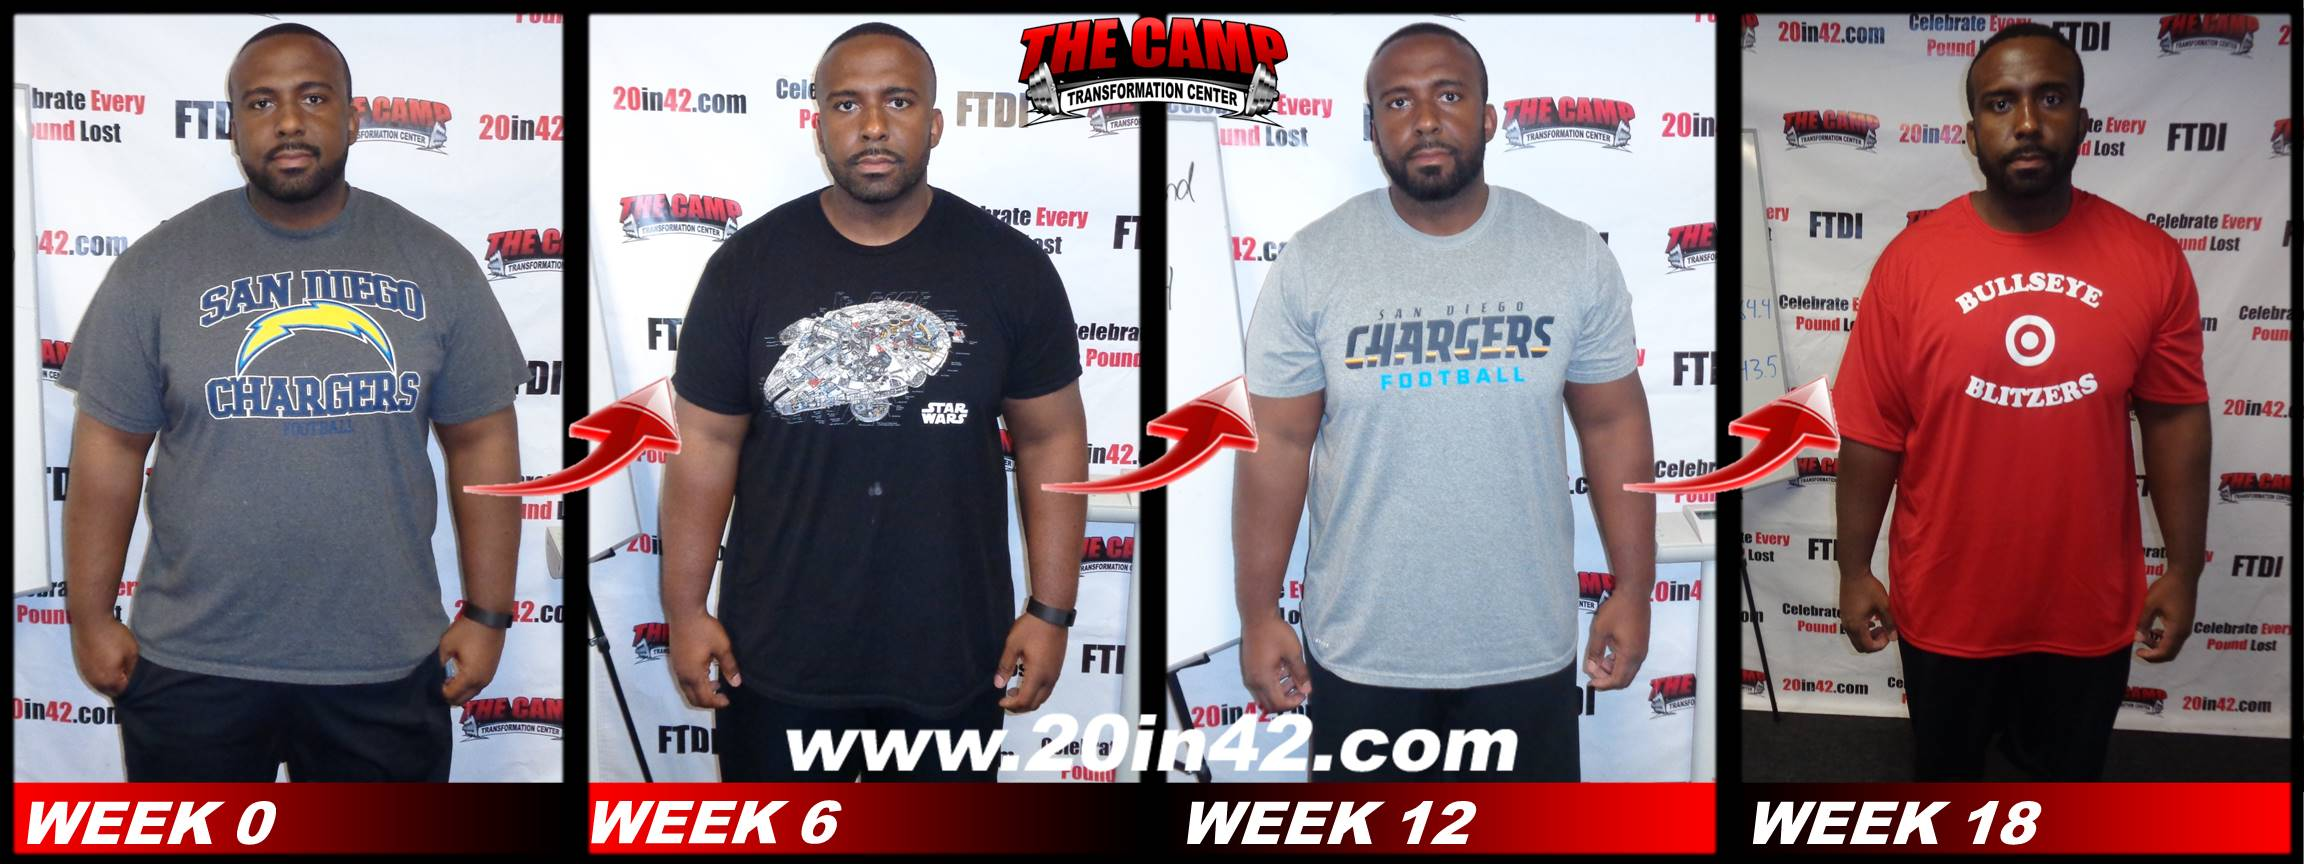 4 images of a man facing forward showing his weight loss after 6 weeks, 12 weeks, and 18 weeks in the weight loss challenge